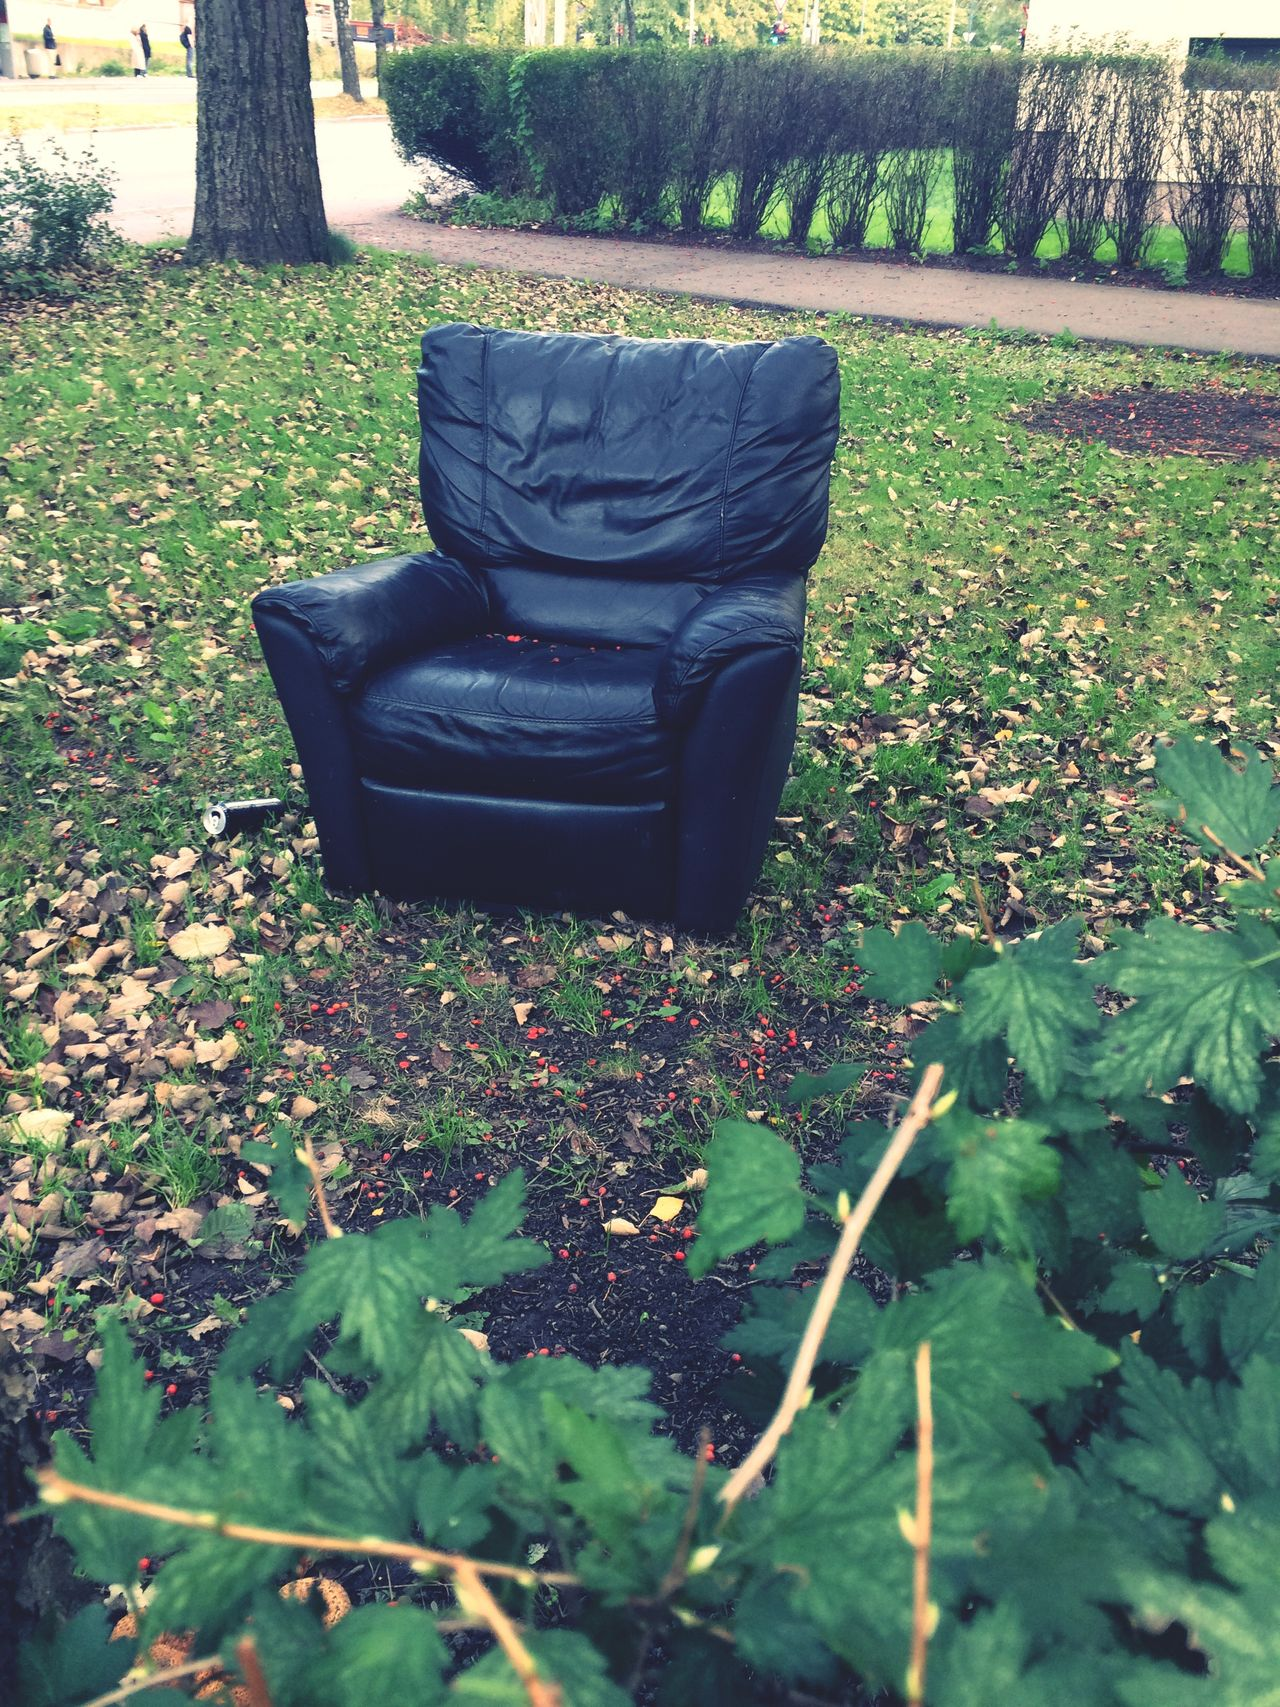 Grass Armchair Out Of Place  Bizarre Outdoors Full Length Relaxation Green Color Day Growth Tranquility Springtime Autumn Bringing The Indoors Out